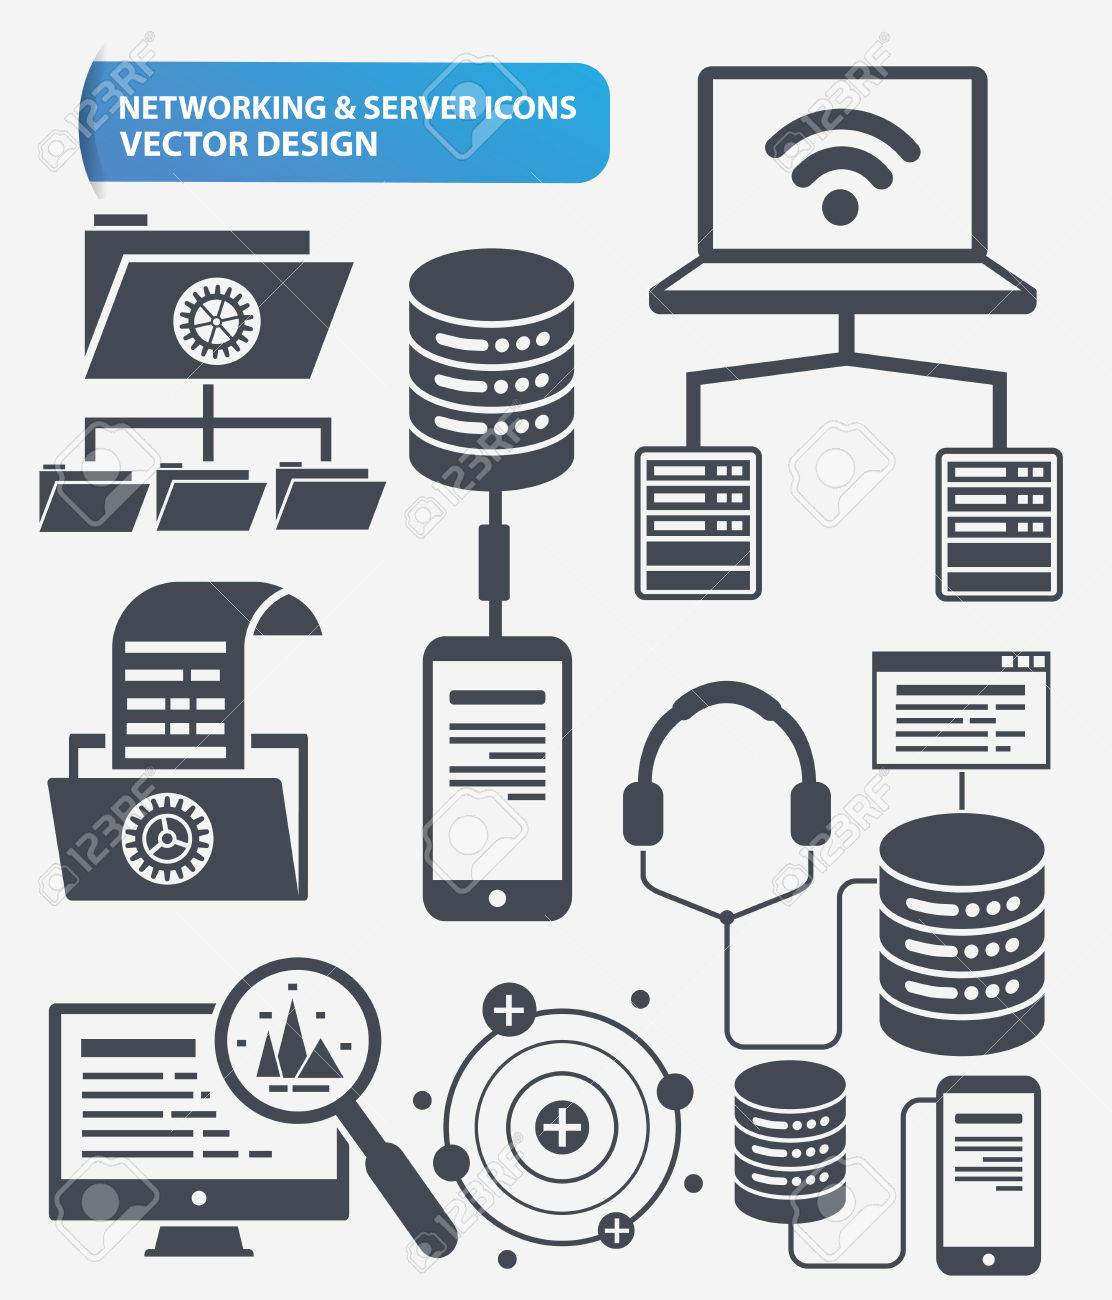 Networking and database server icon set design,clean vector